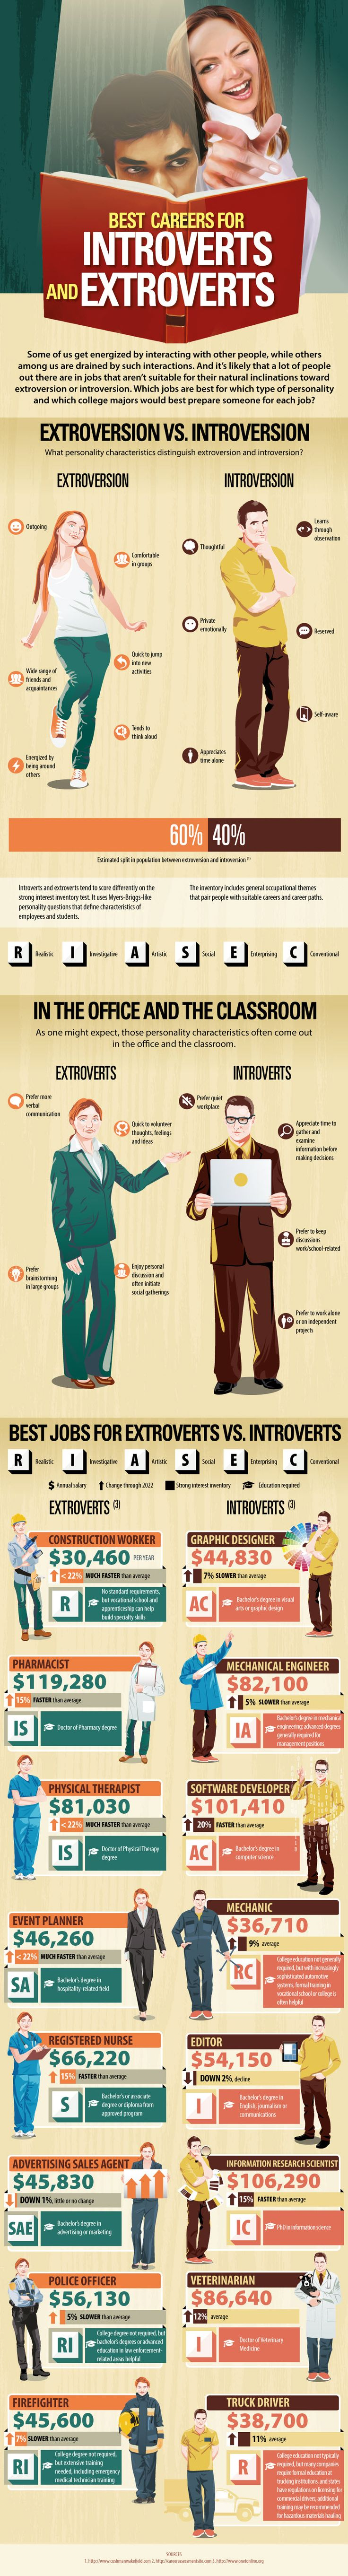 Careers for Introverts and Extroverts- Infographic #introverts #extroverts #careers